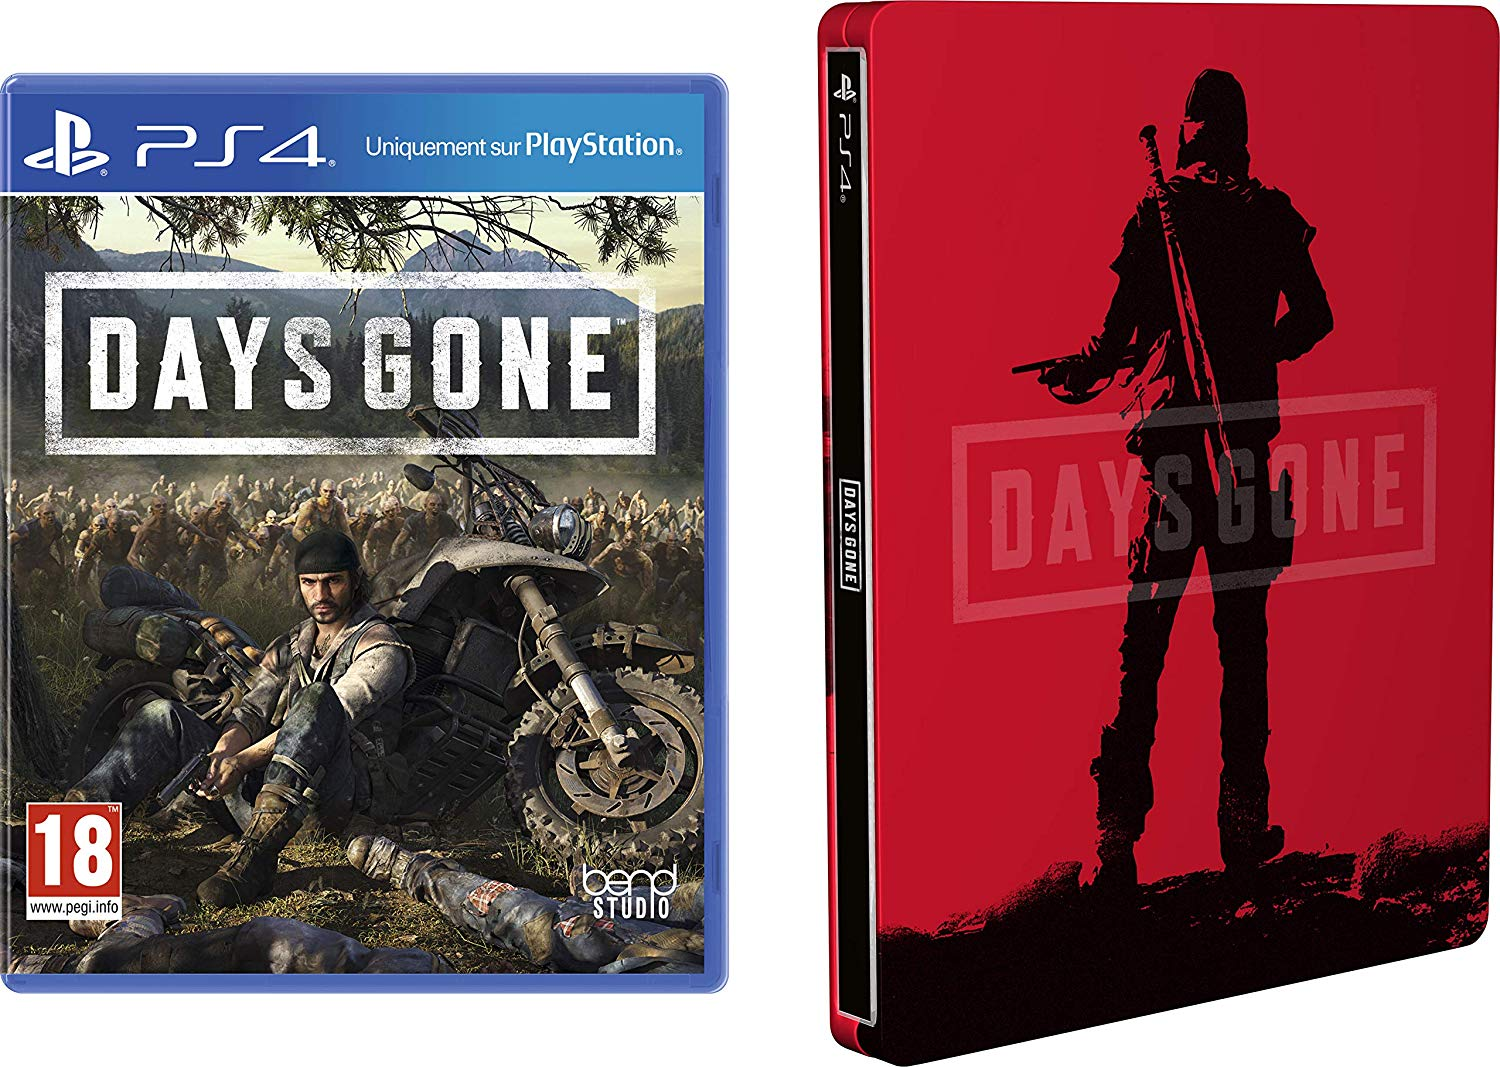 Days gone + le steelbook